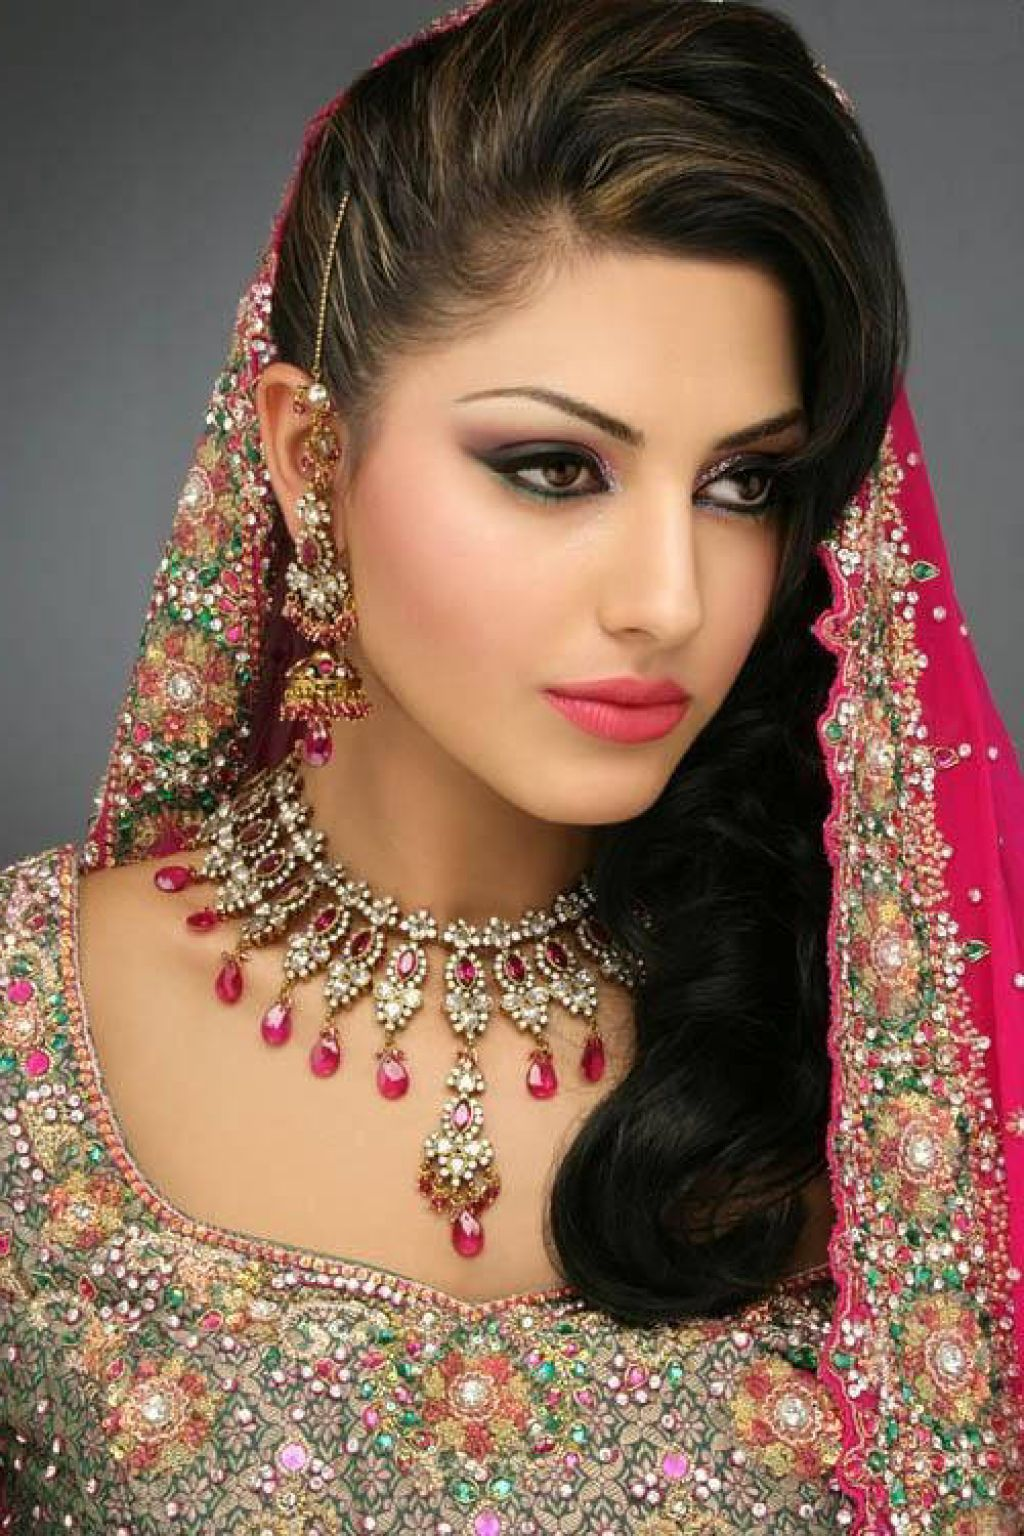 Top 10 Most Beautiful Indian Wedding Bridal Hairstyles For